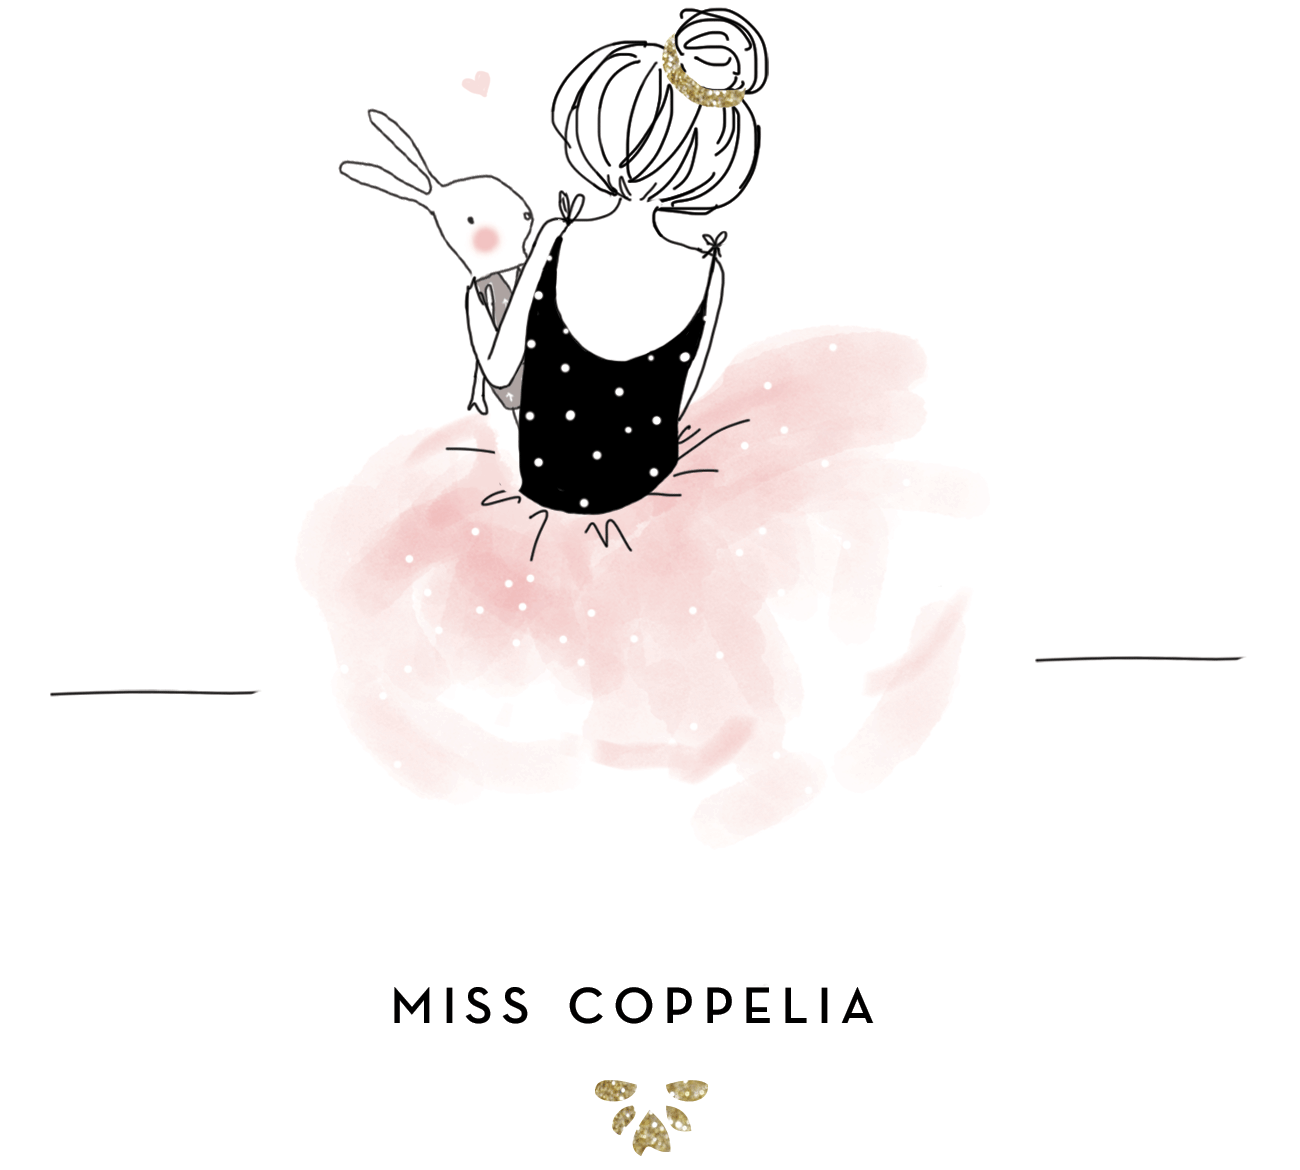 Miss Coppelia